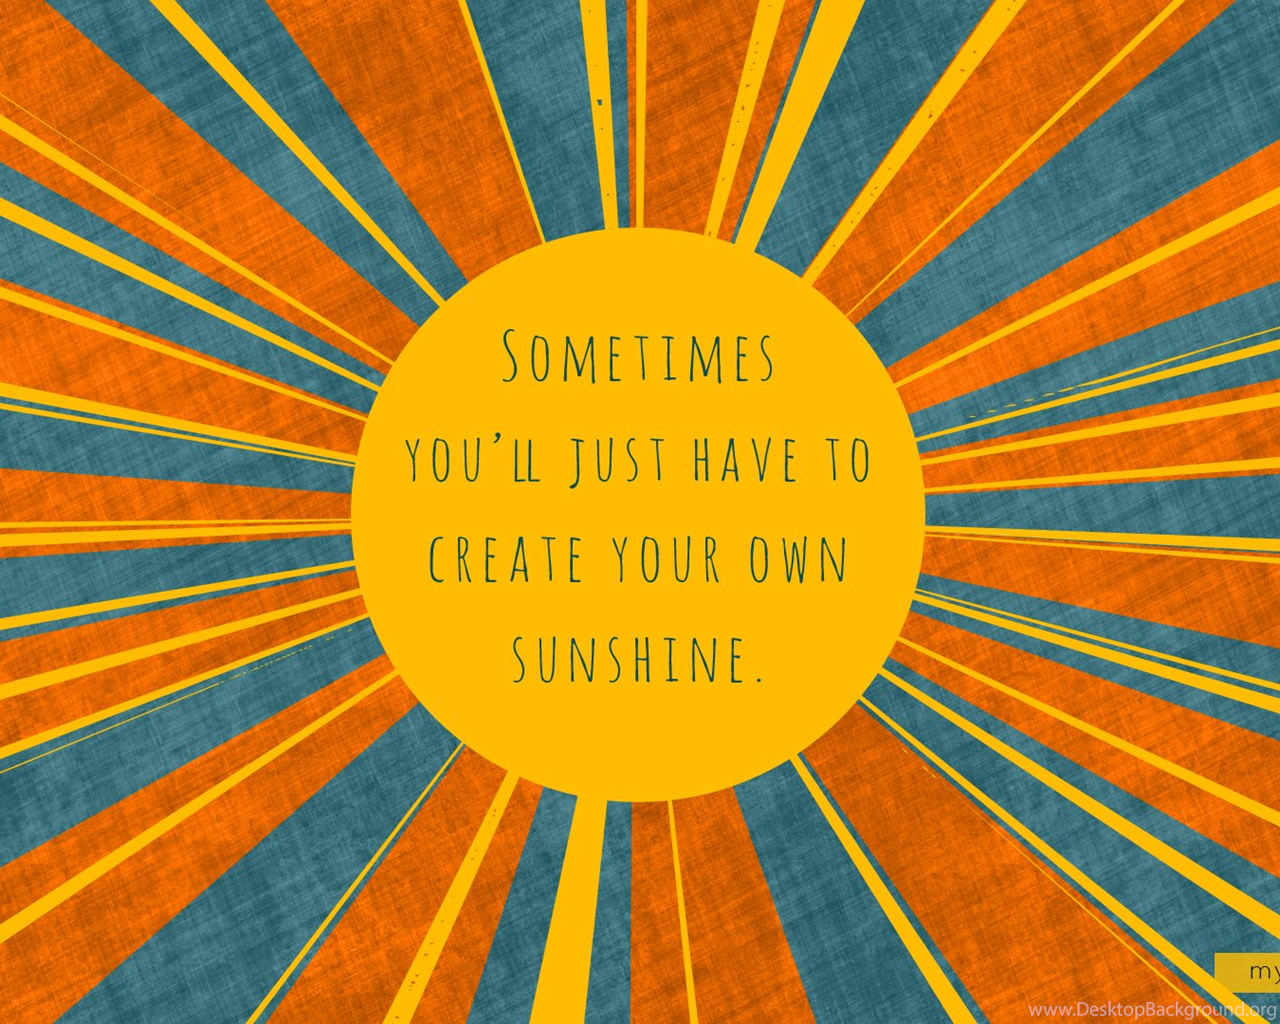 Make Your Own Sunshine Create 1920x1080 Hd Wallpapers And Free